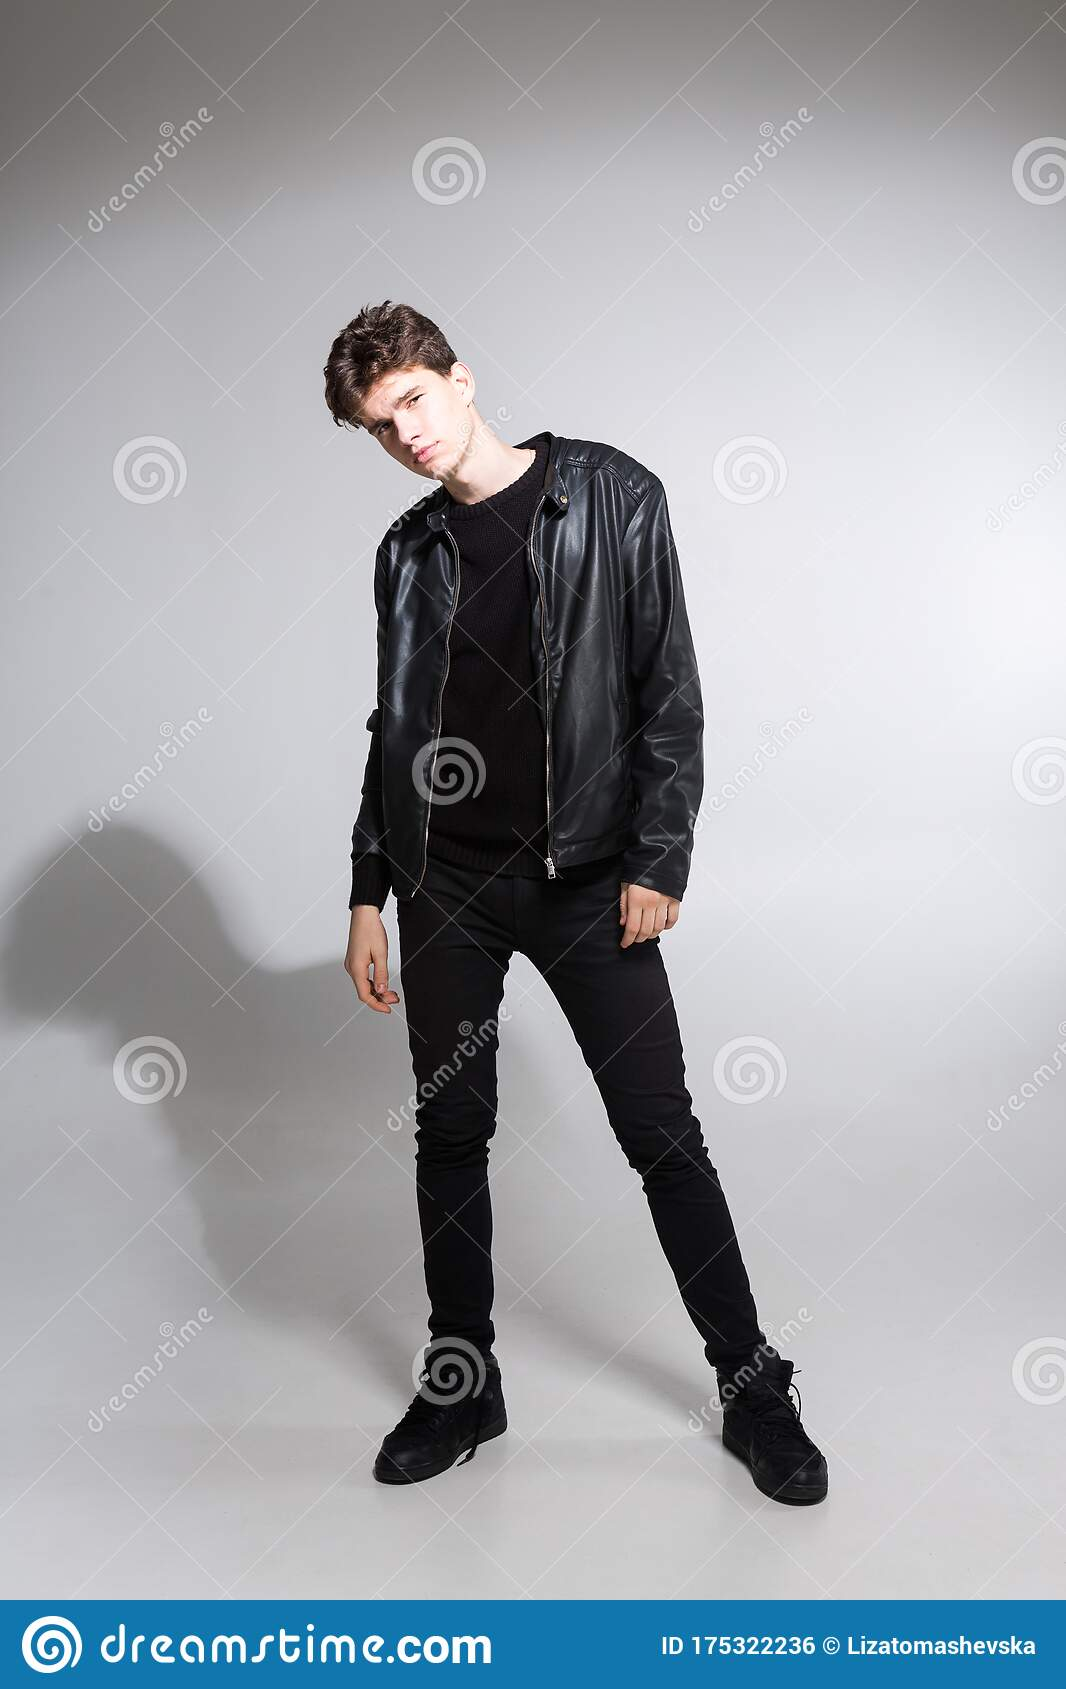 Full Length Portrait Of Young Fit Man In Dark Cloths On The White Background Young Male Fashion Model Posing In Casual Outfit Stock Photo Image Of Clothing Long 175322236